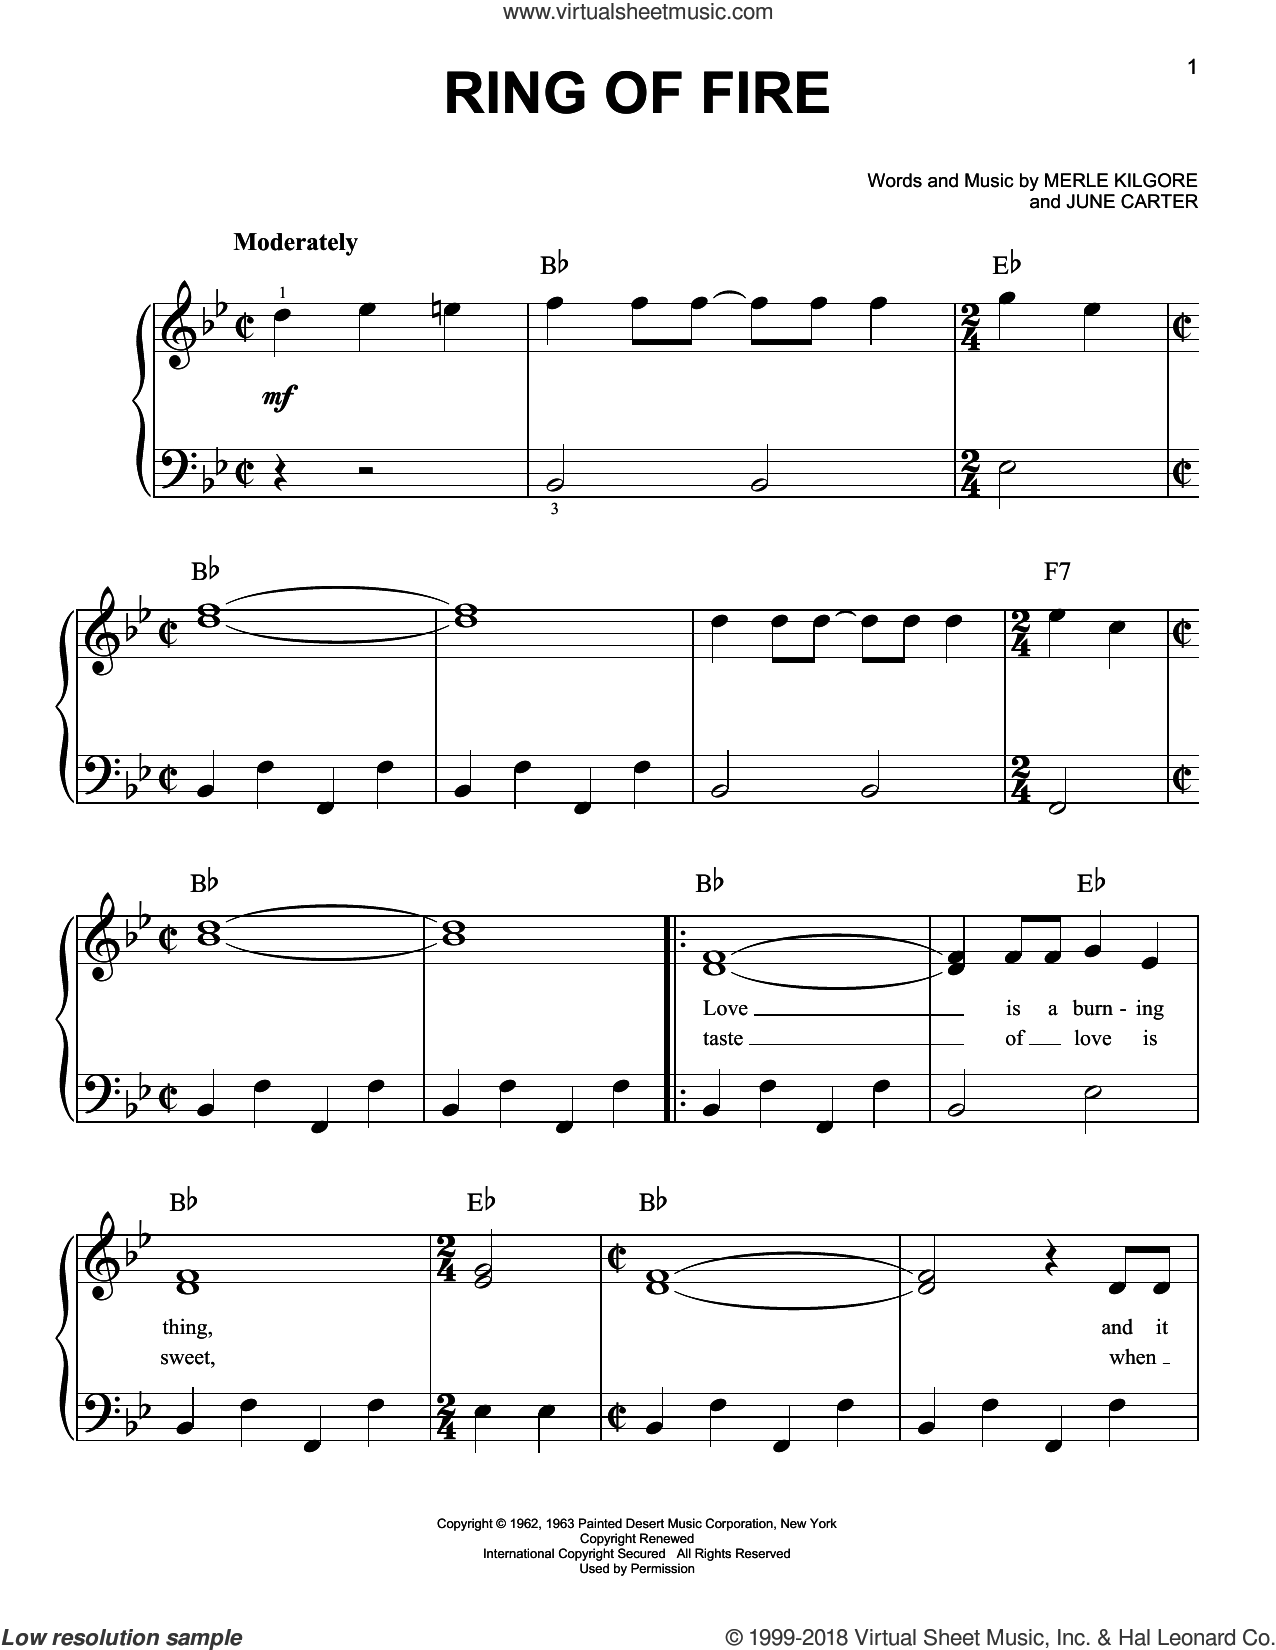 Ring Of Fire sheet music for piano solo by Merle Kilgore, Johnny Cash and June Carter. Score Image Preview.